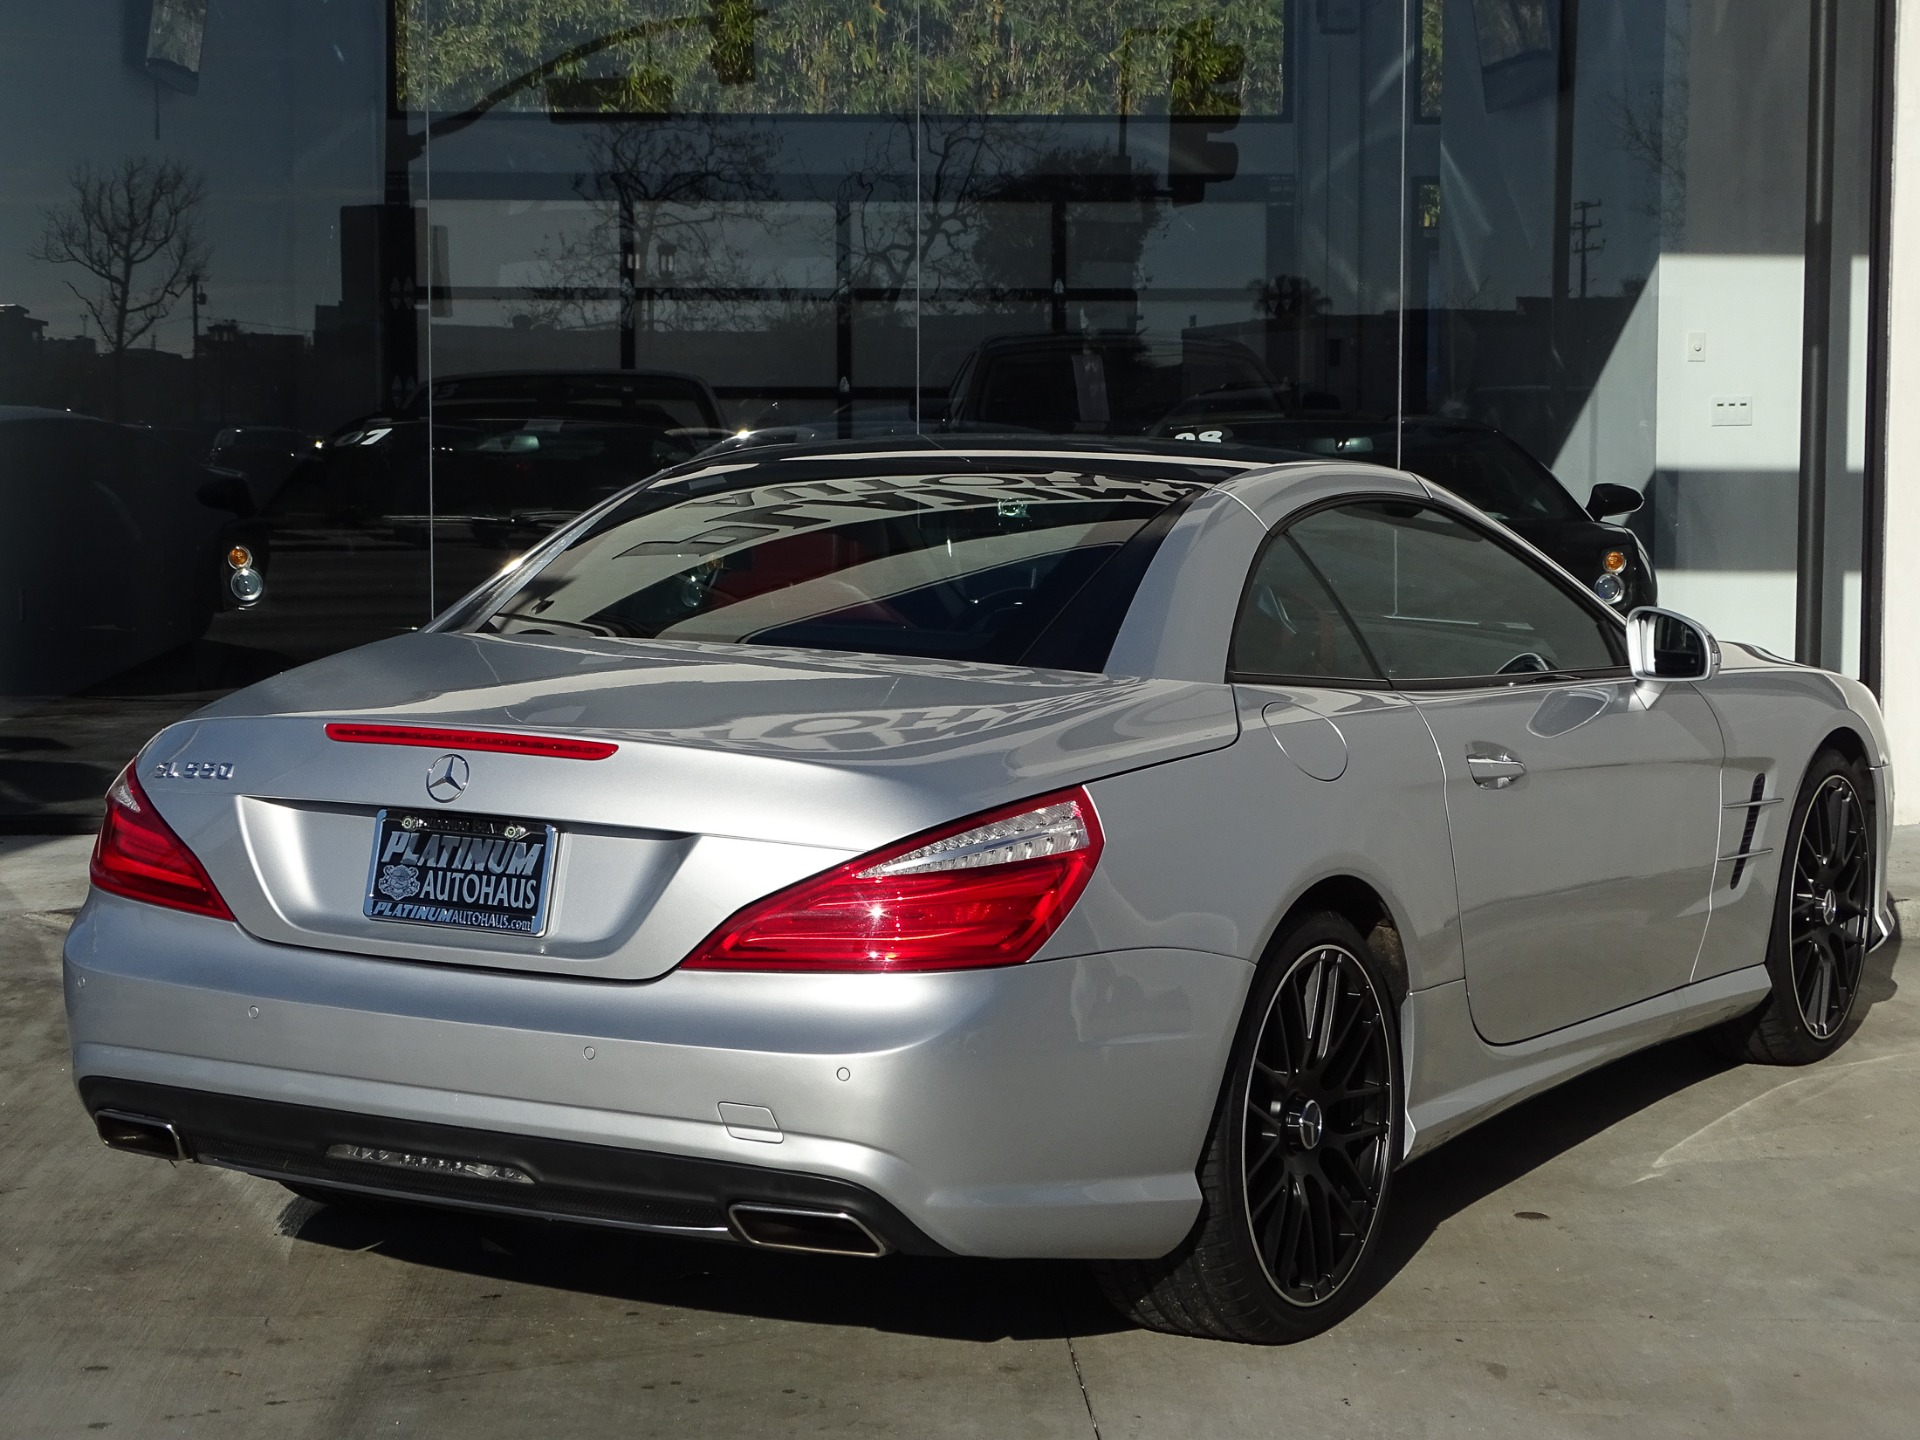 Used-2013-Mercedes-Benz-SL-Class-SL550